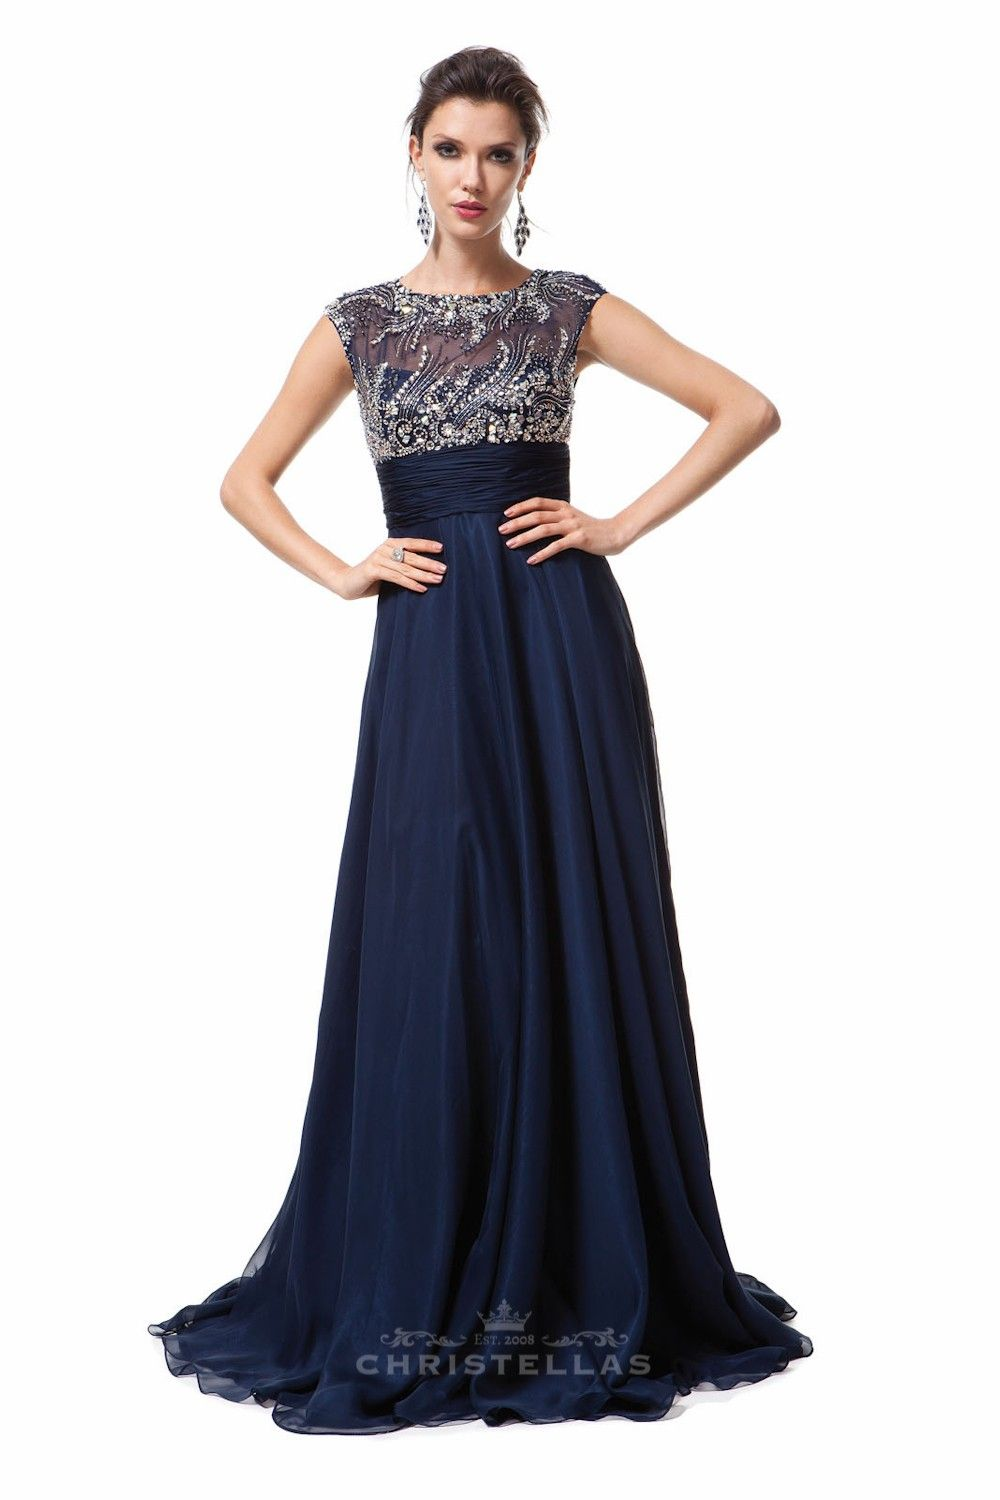 This dazzling dress is sure to wow the crowd with it's